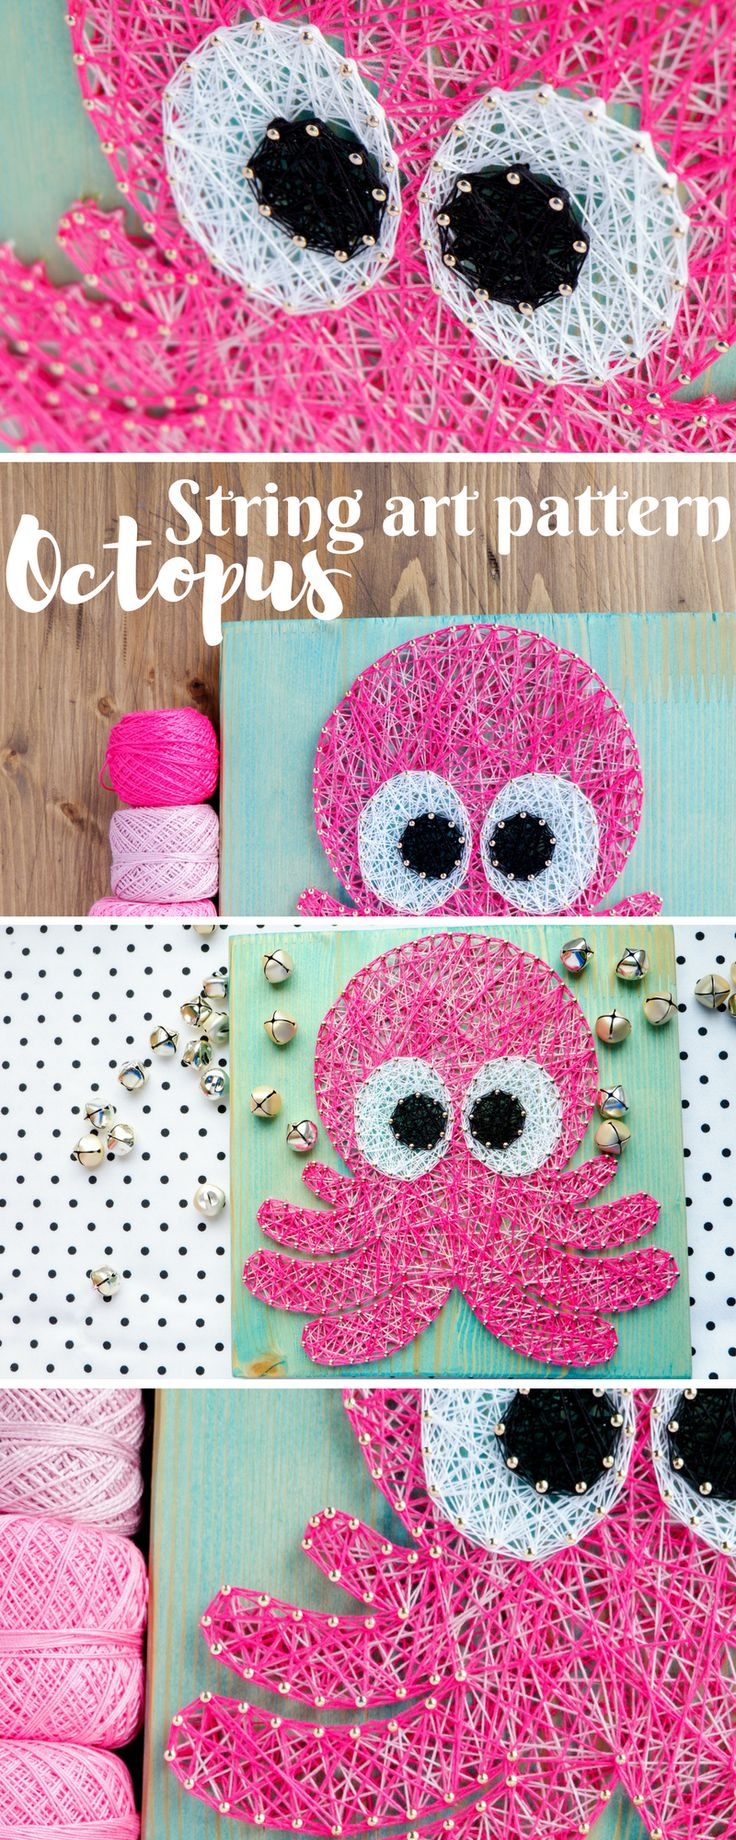 modern string art pattern for baby octopus. great craft project for nursery or kids room!